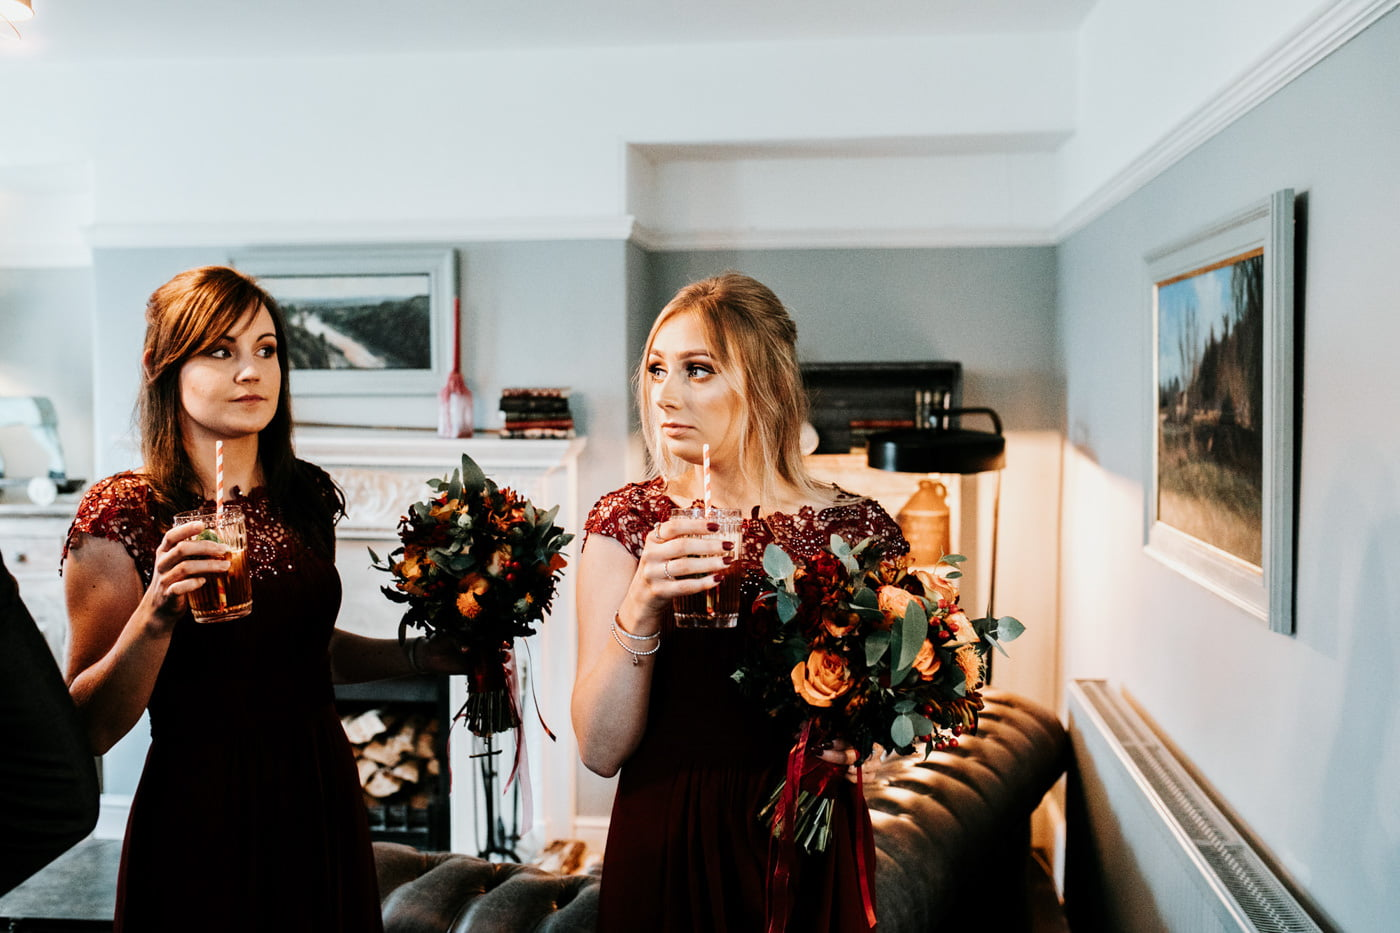 Natalie and Rob, Widbrook Grange, Wiltshire 27